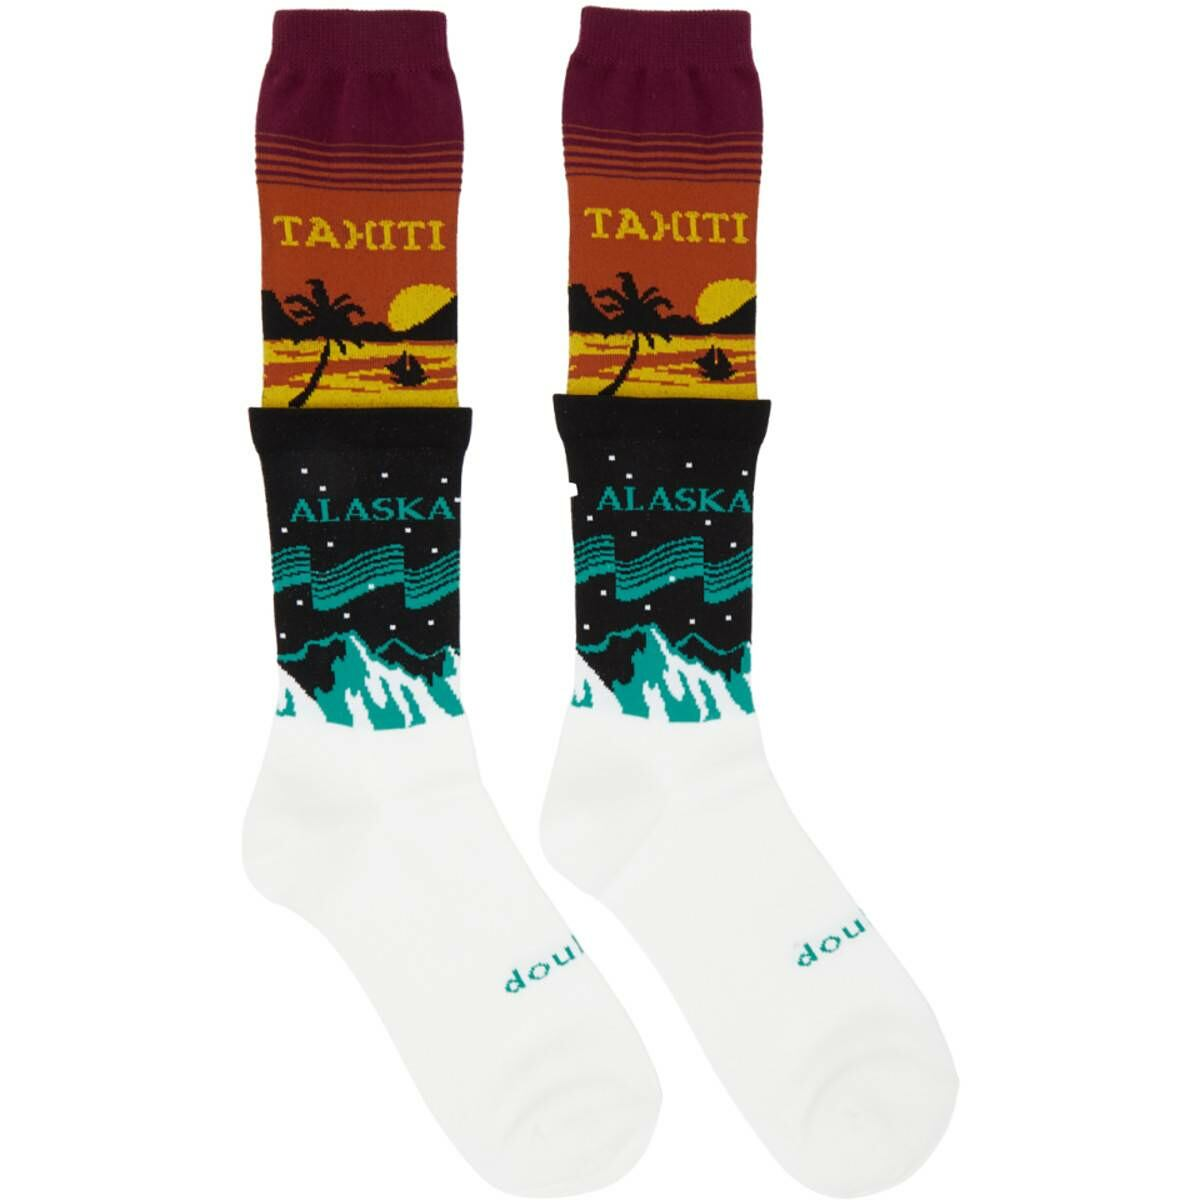 Doublet Multicolor Temperature Layered Socks Ssense USA MEN Men ACCESSORIES Mens SOCKS